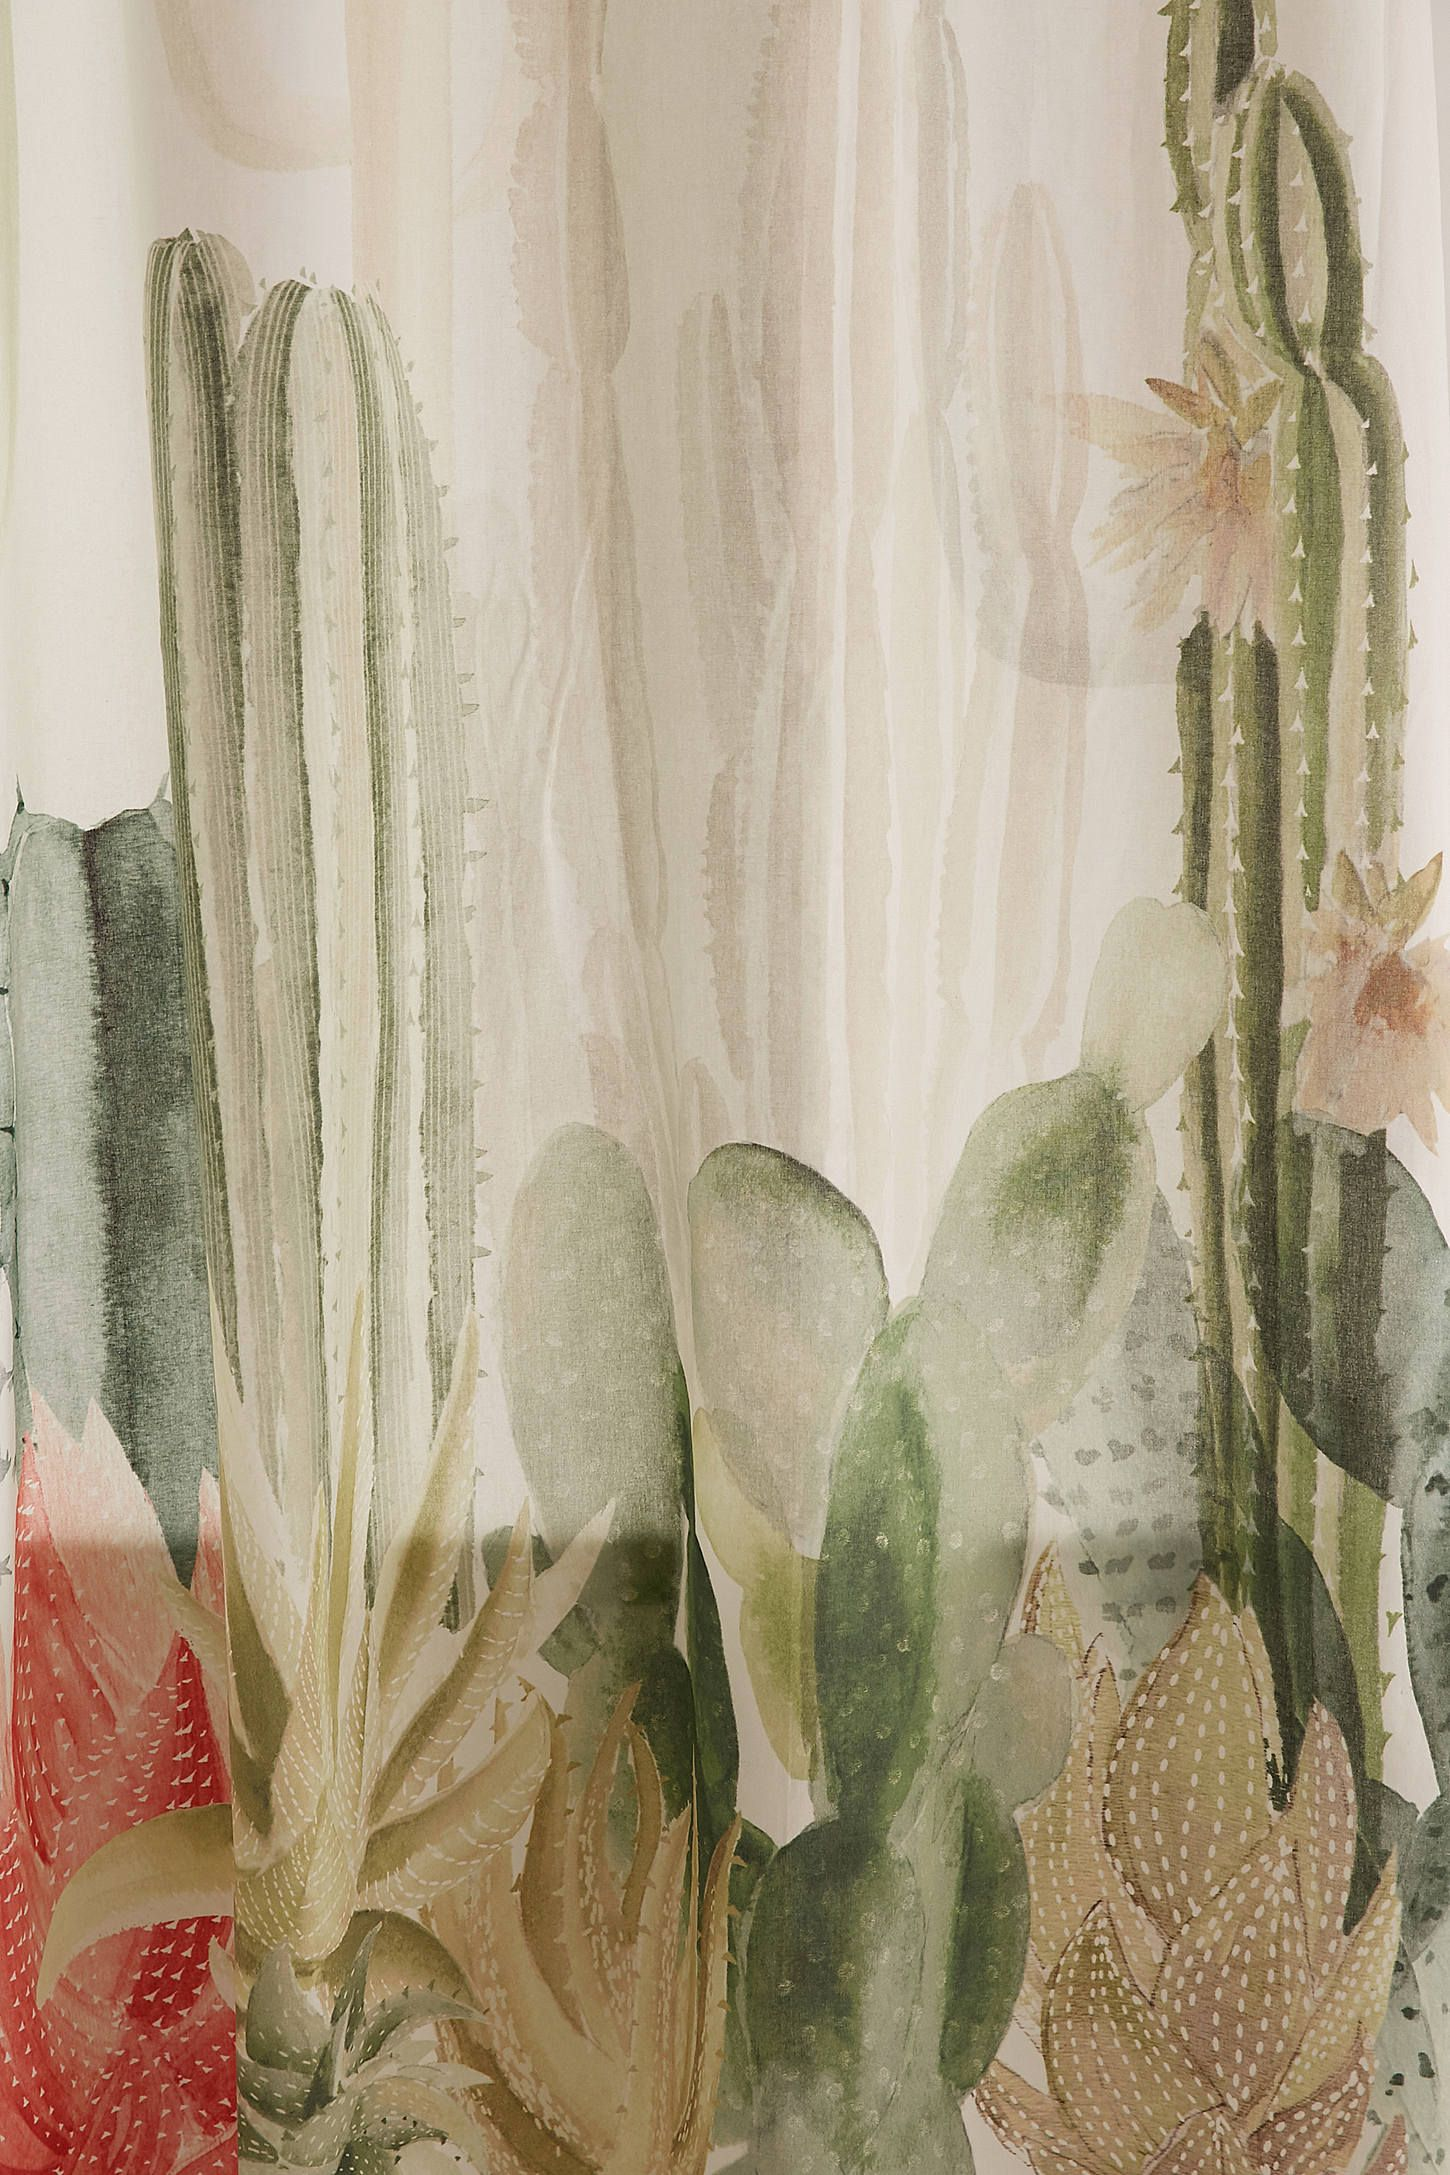 Shop Cactus Landscape Shower Curtain At Urban Outfitters Today We Carry All The Latest Styles